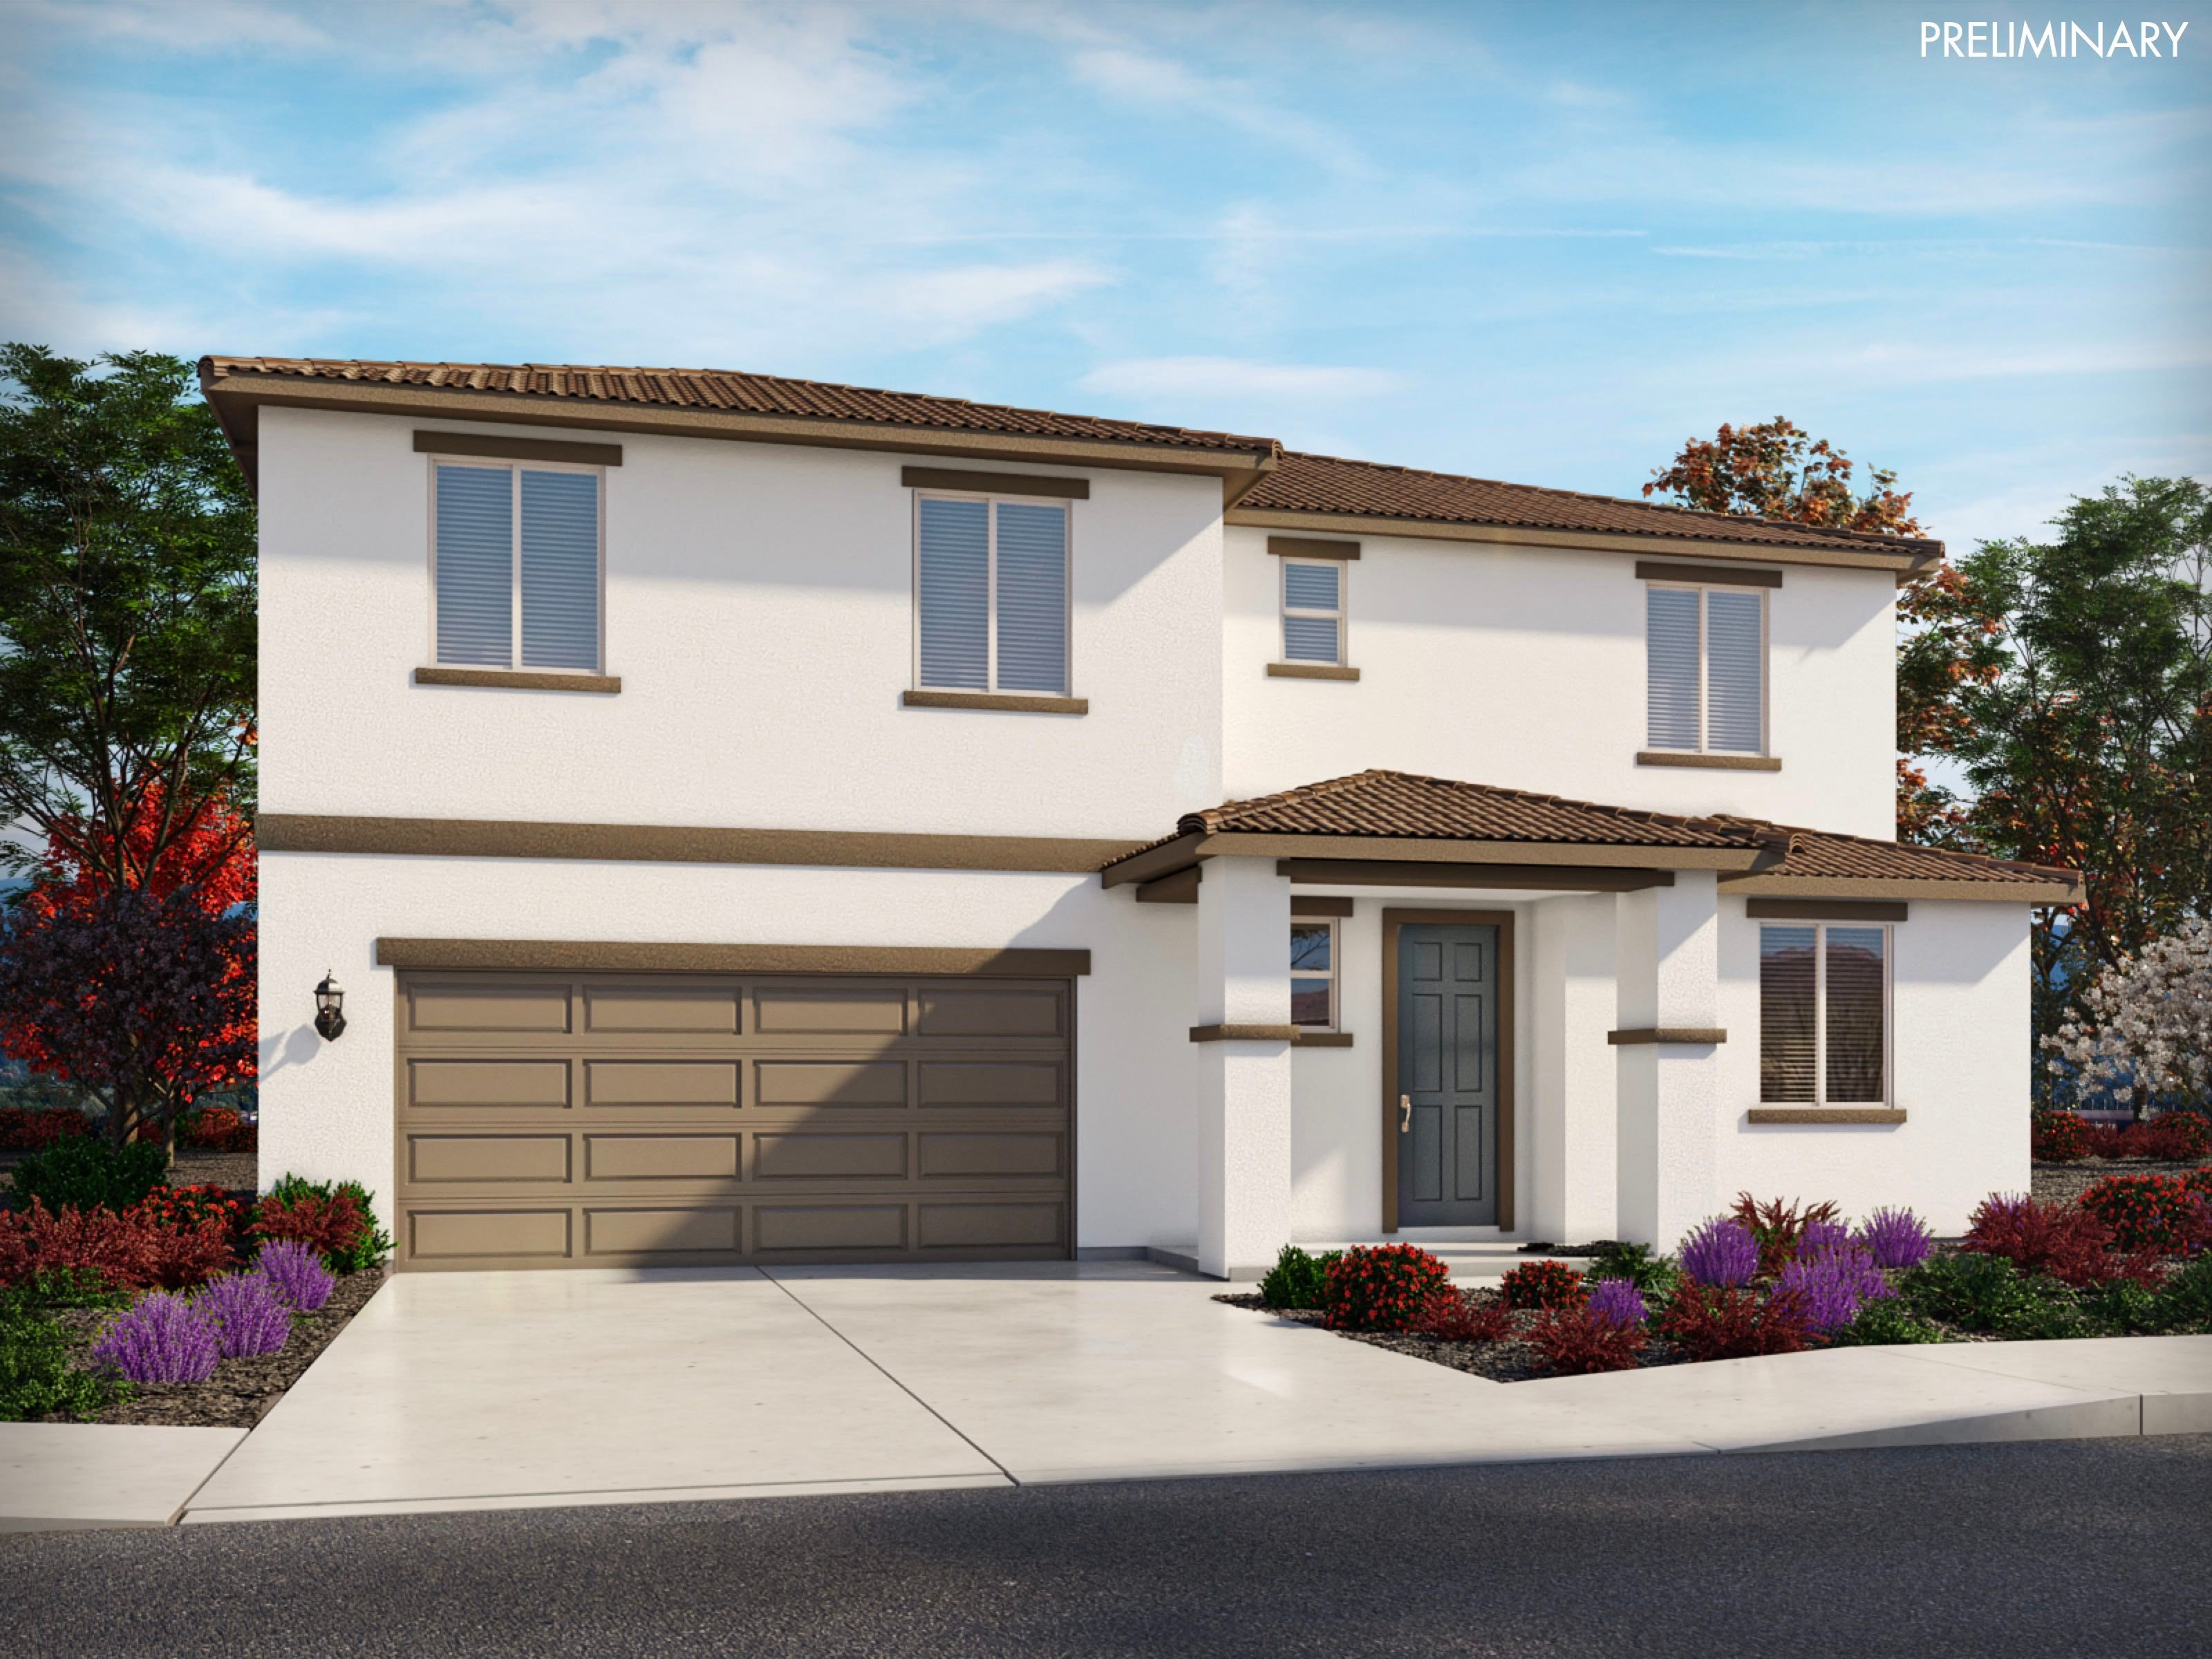 Exterior featured in the Residence 7 By Meritage Homes in Santa Cruz, CA